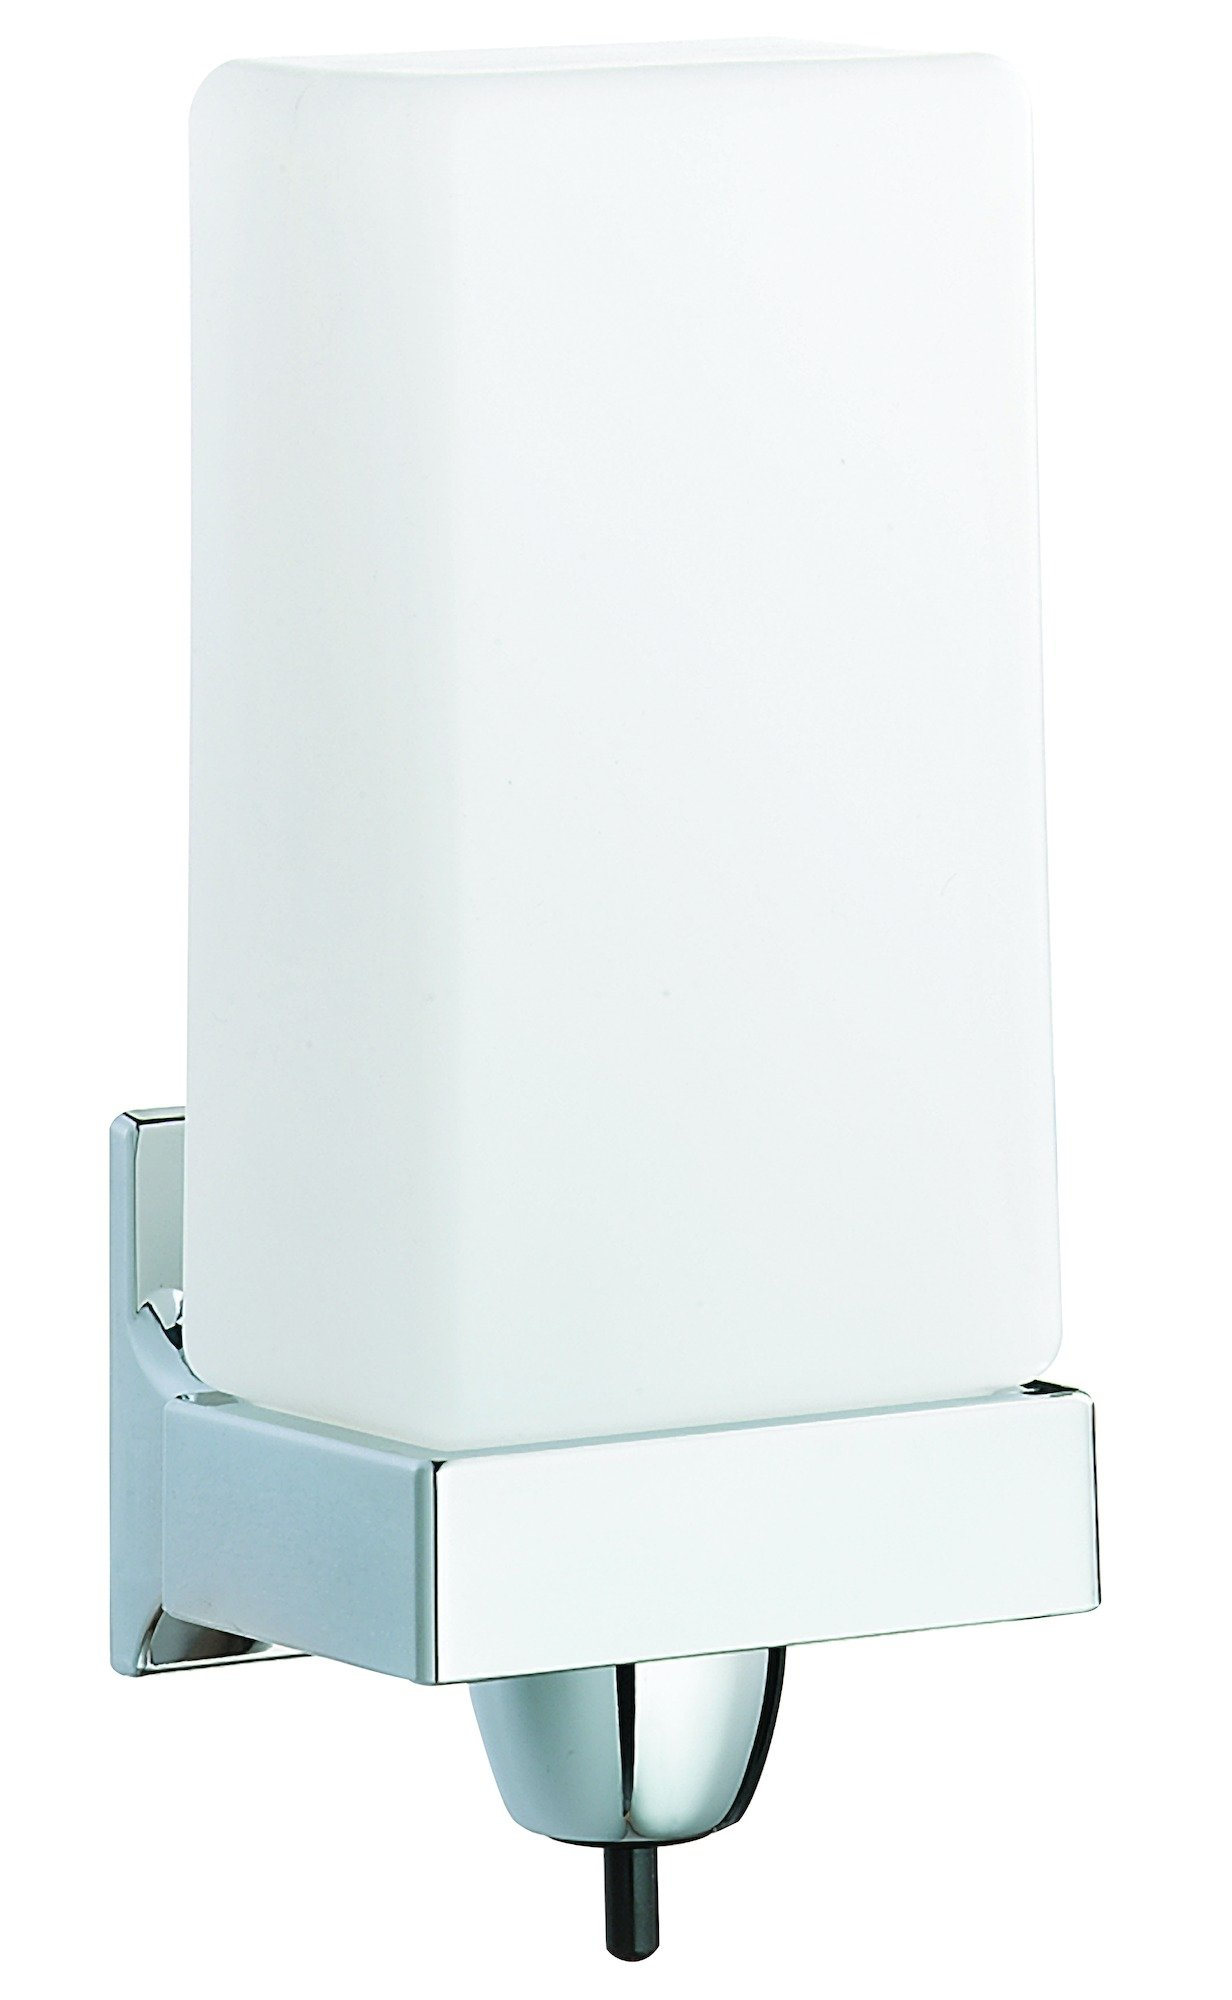 Wall Mounted Soap Dispenser 650 | Accurate Door & Hardware, Inc.